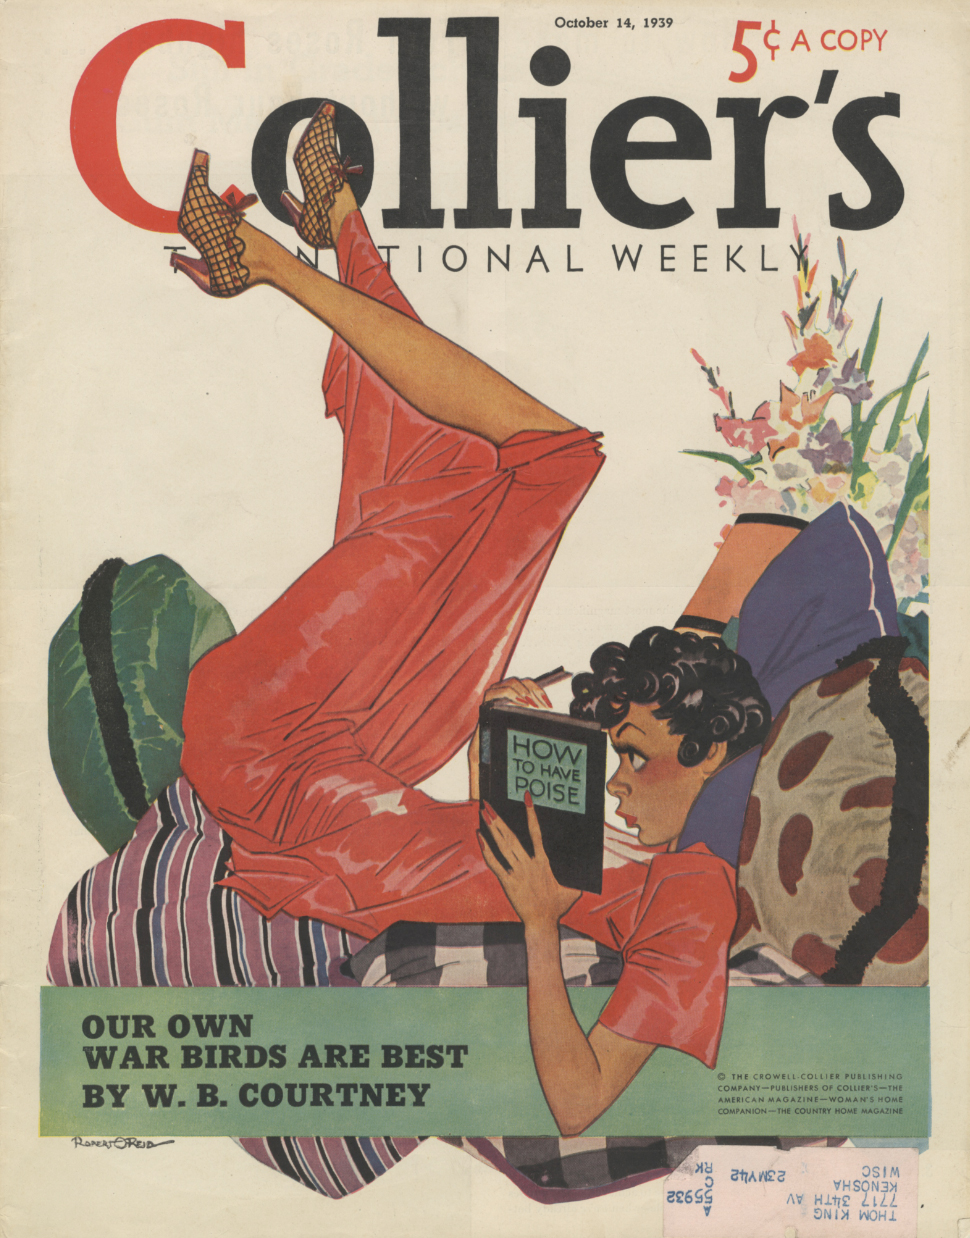 Robert O. Reid, cover illustration,  Collier's Weekly , October 14, 1939. One of the  Collier's  issues I acquired at the Wooden Shoe.